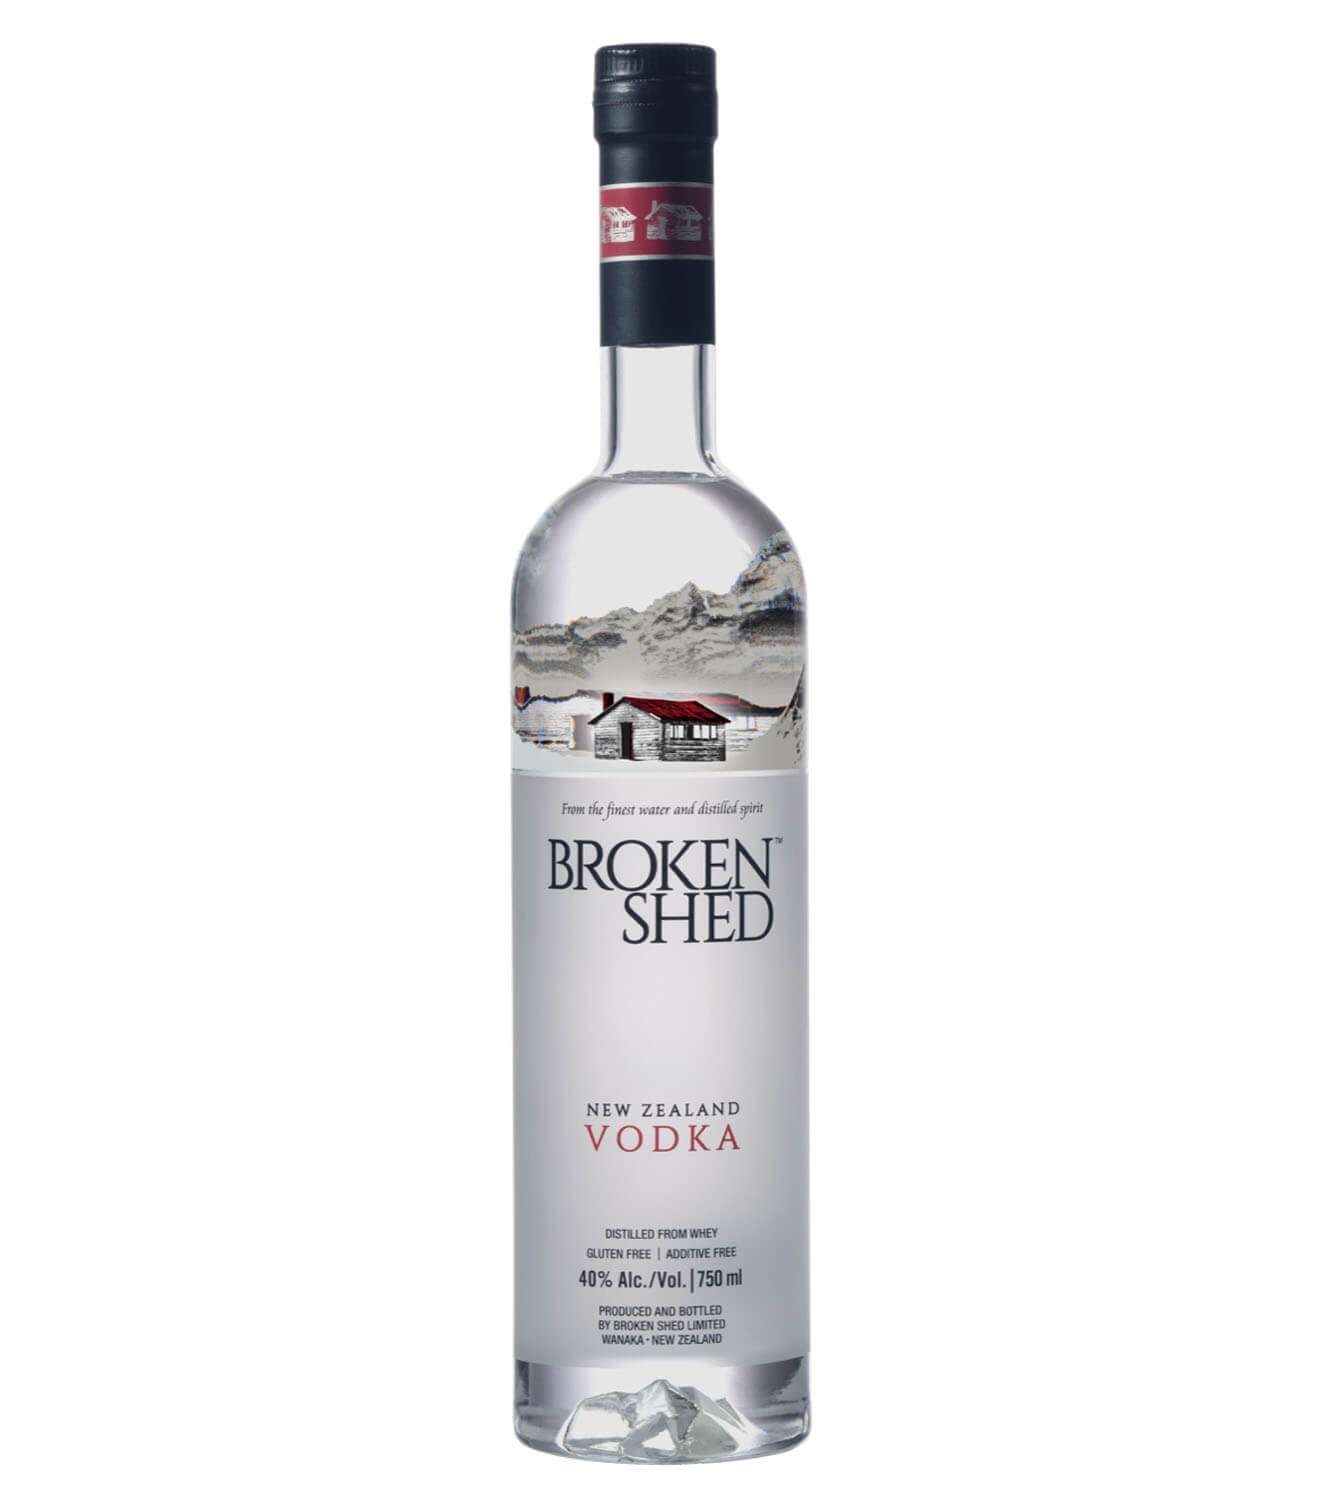 Broken Shed Vodka, bottle on white